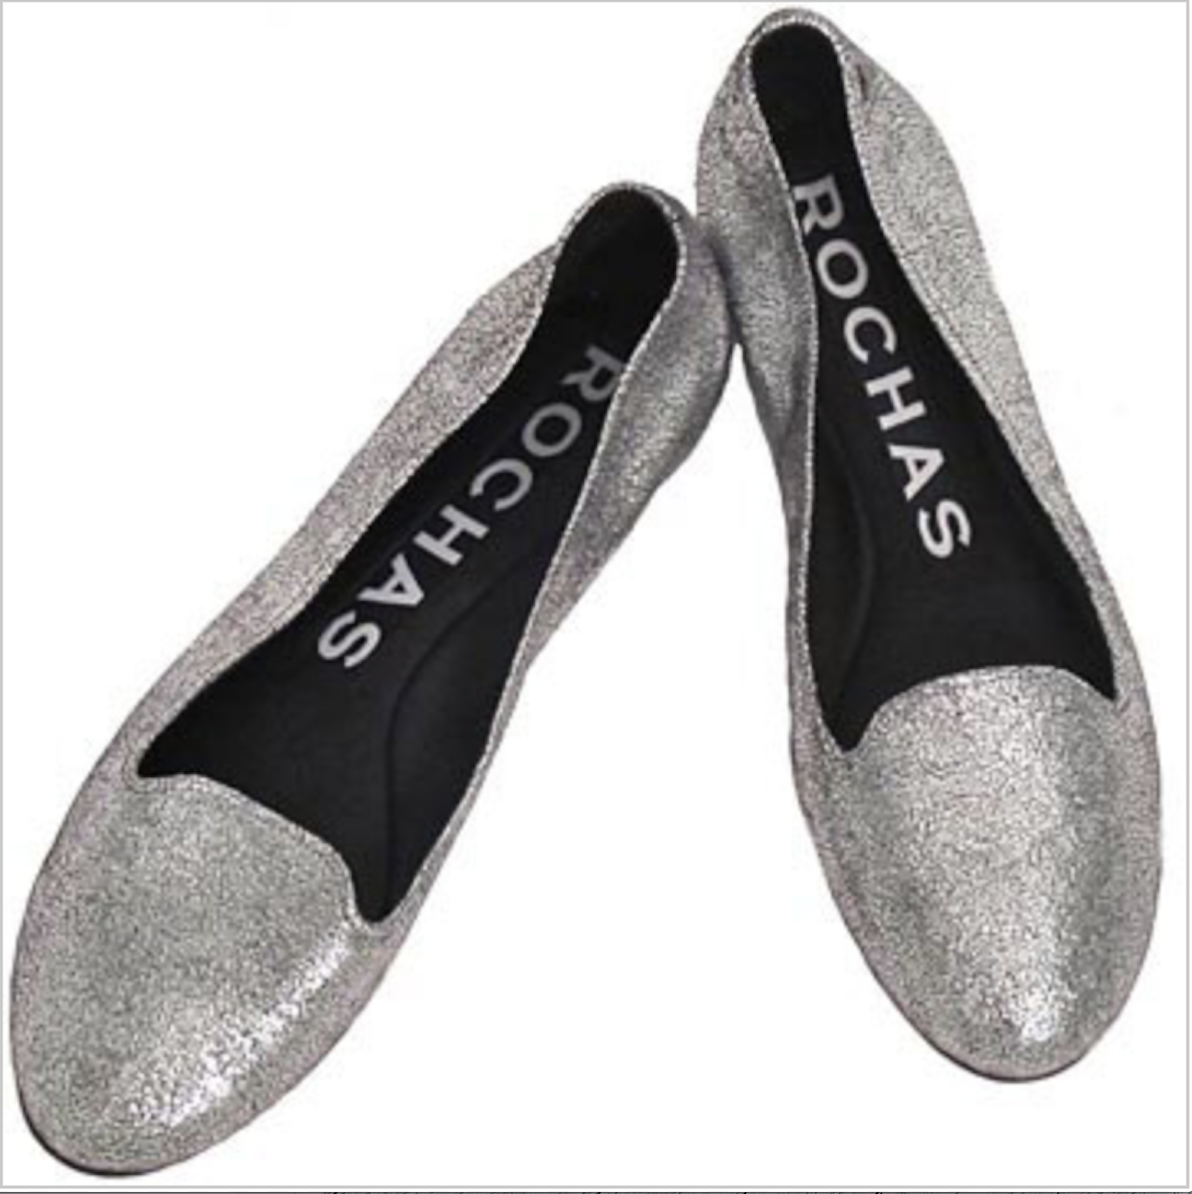 NEW ROCHAS Silver metallic textured leather slip ons Loafers Flats Sz 38.5